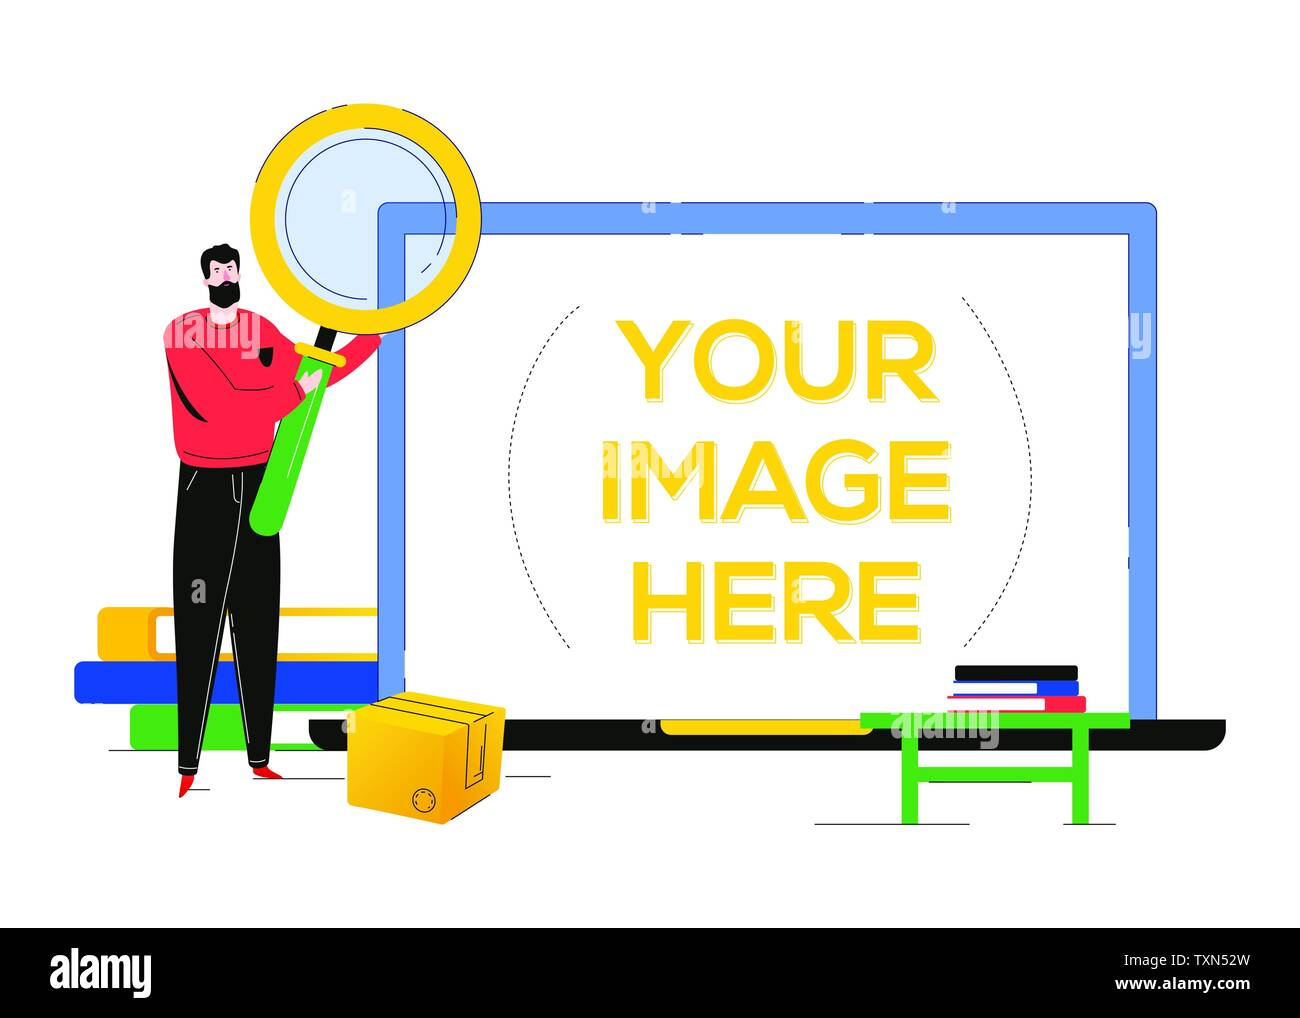 Search concept - flat design style colorful illustration - Stock Image